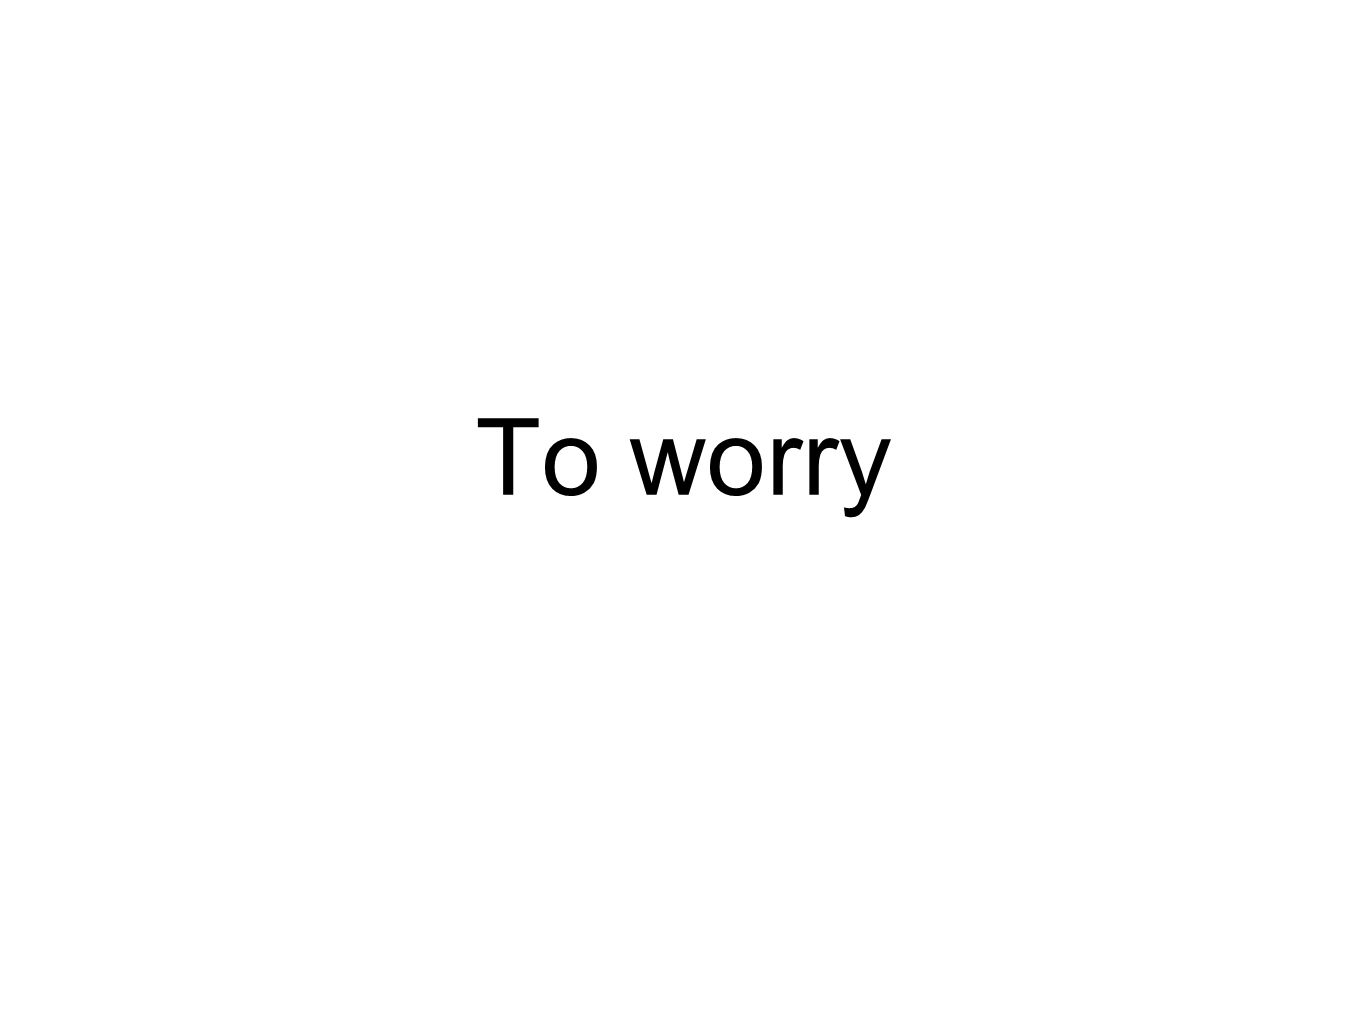 To worry